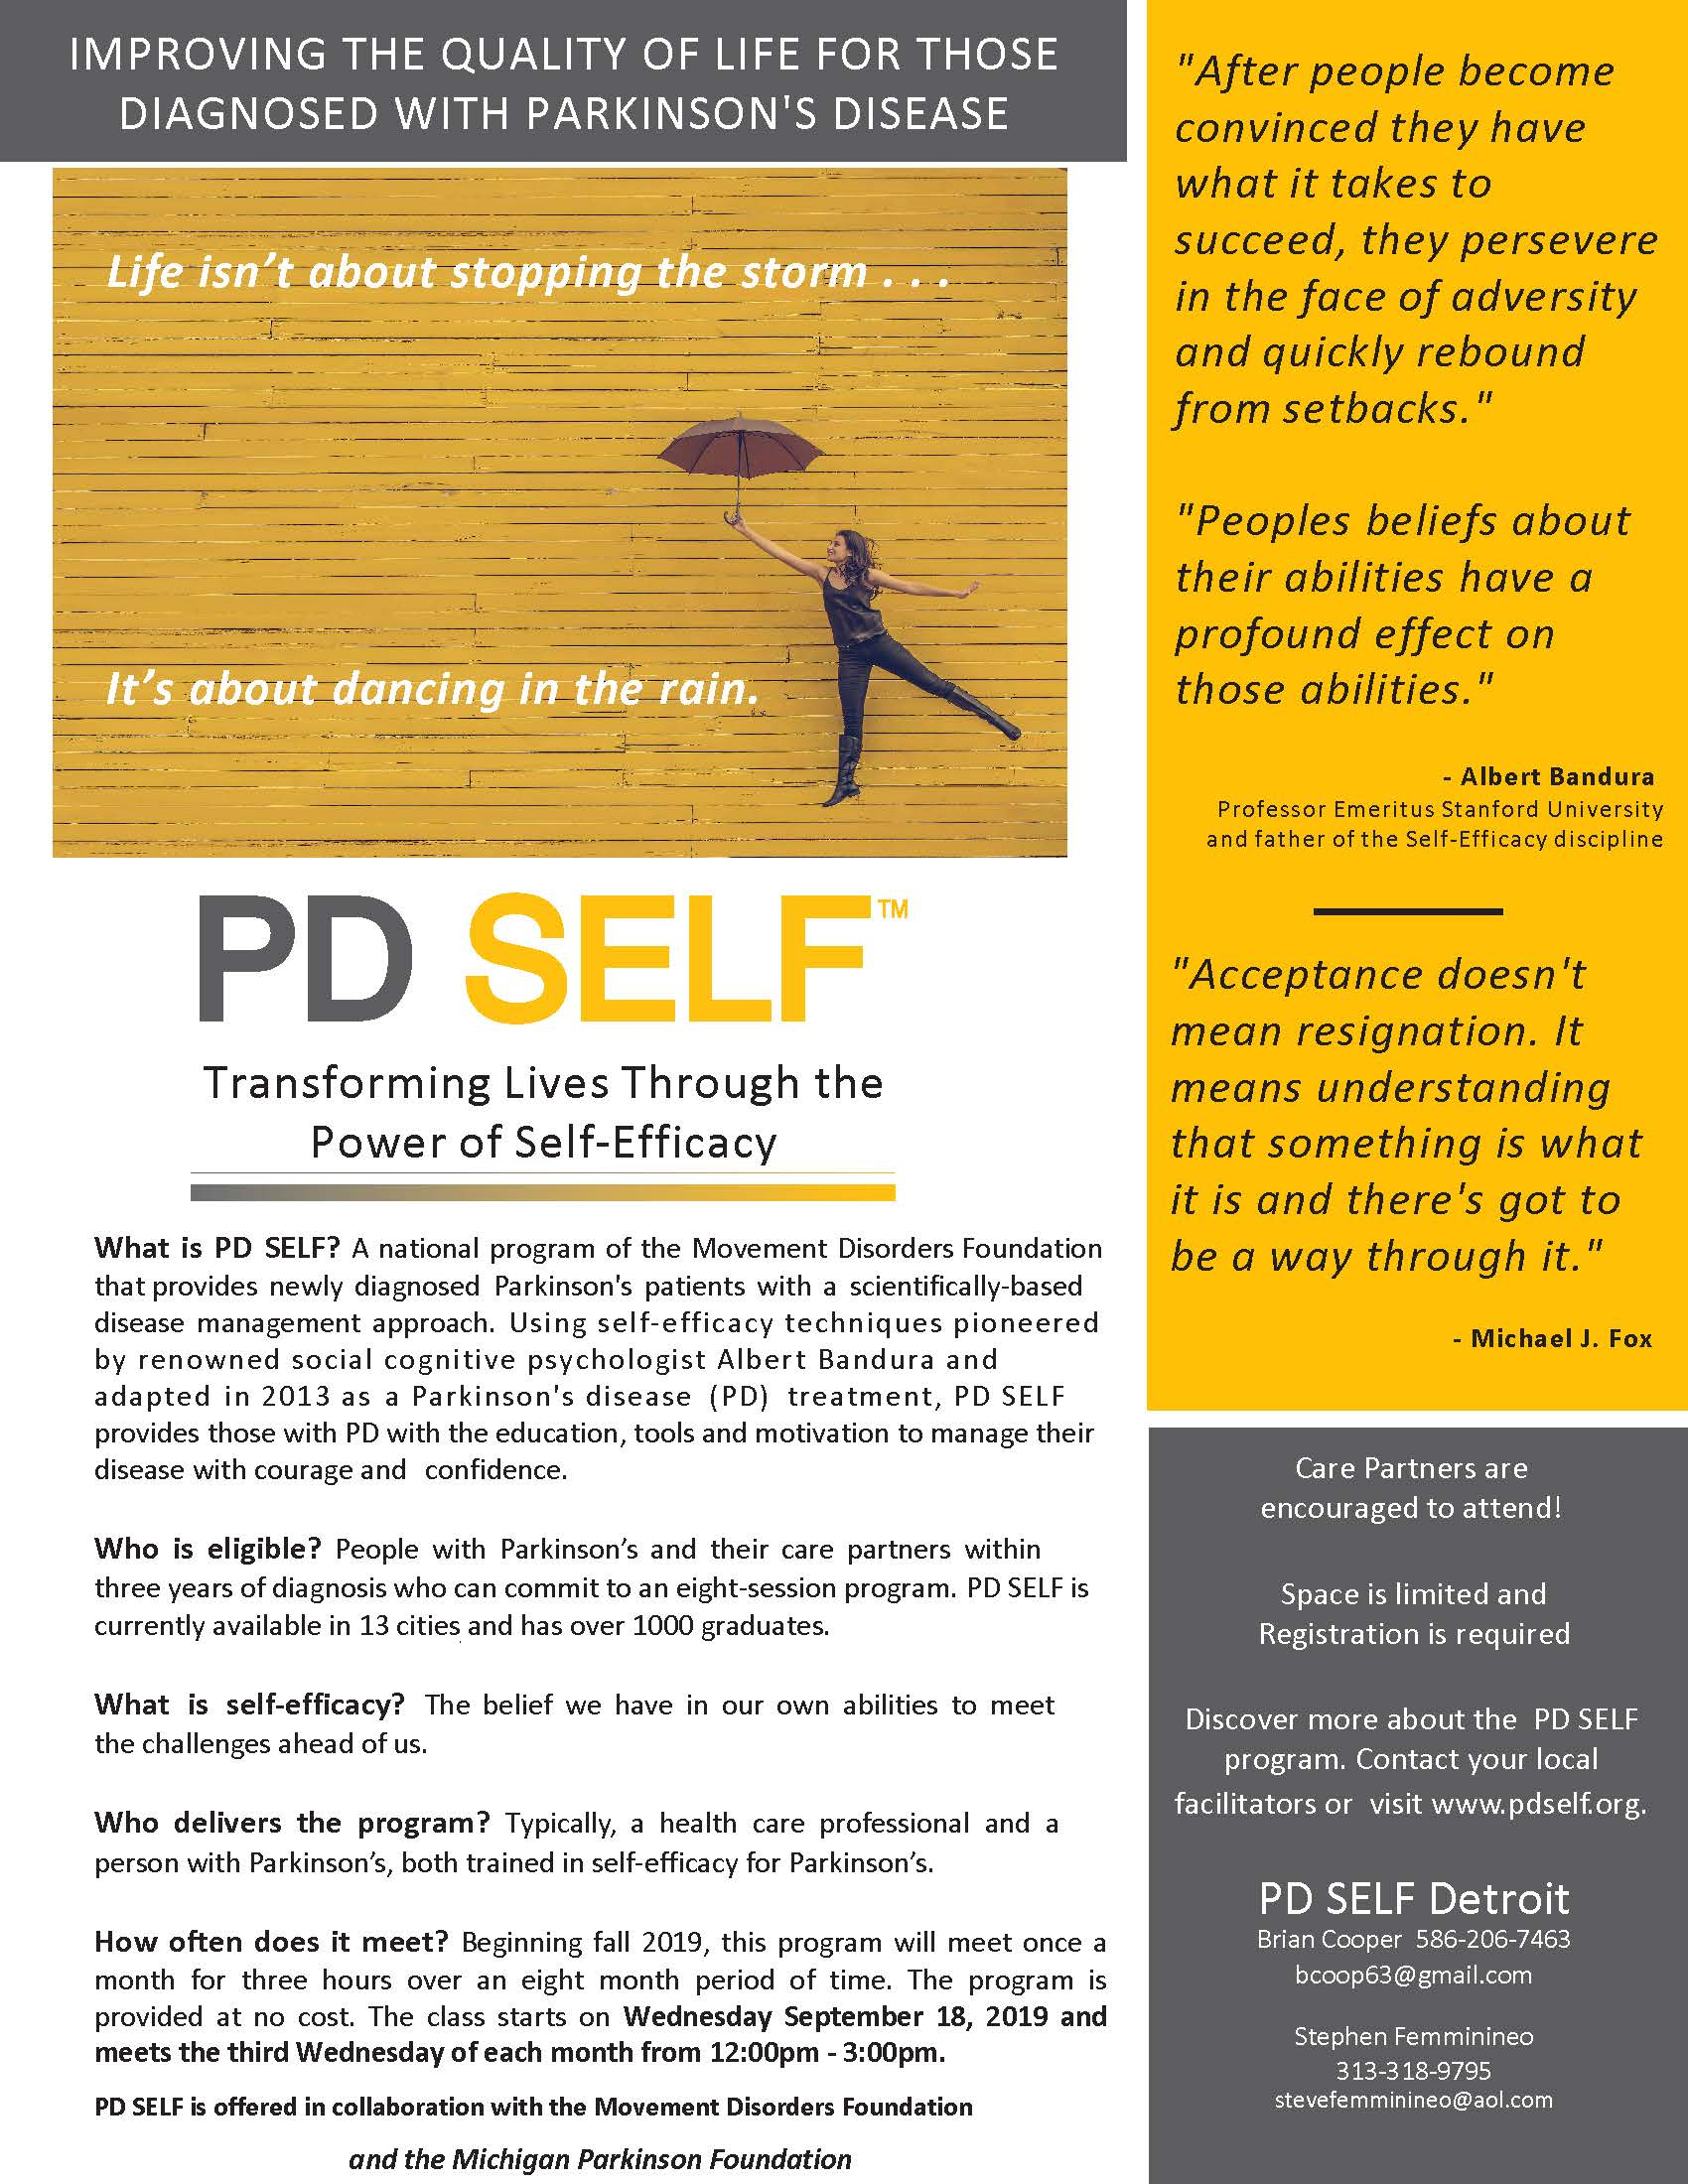 PD SELF Flyer Detroit 2019